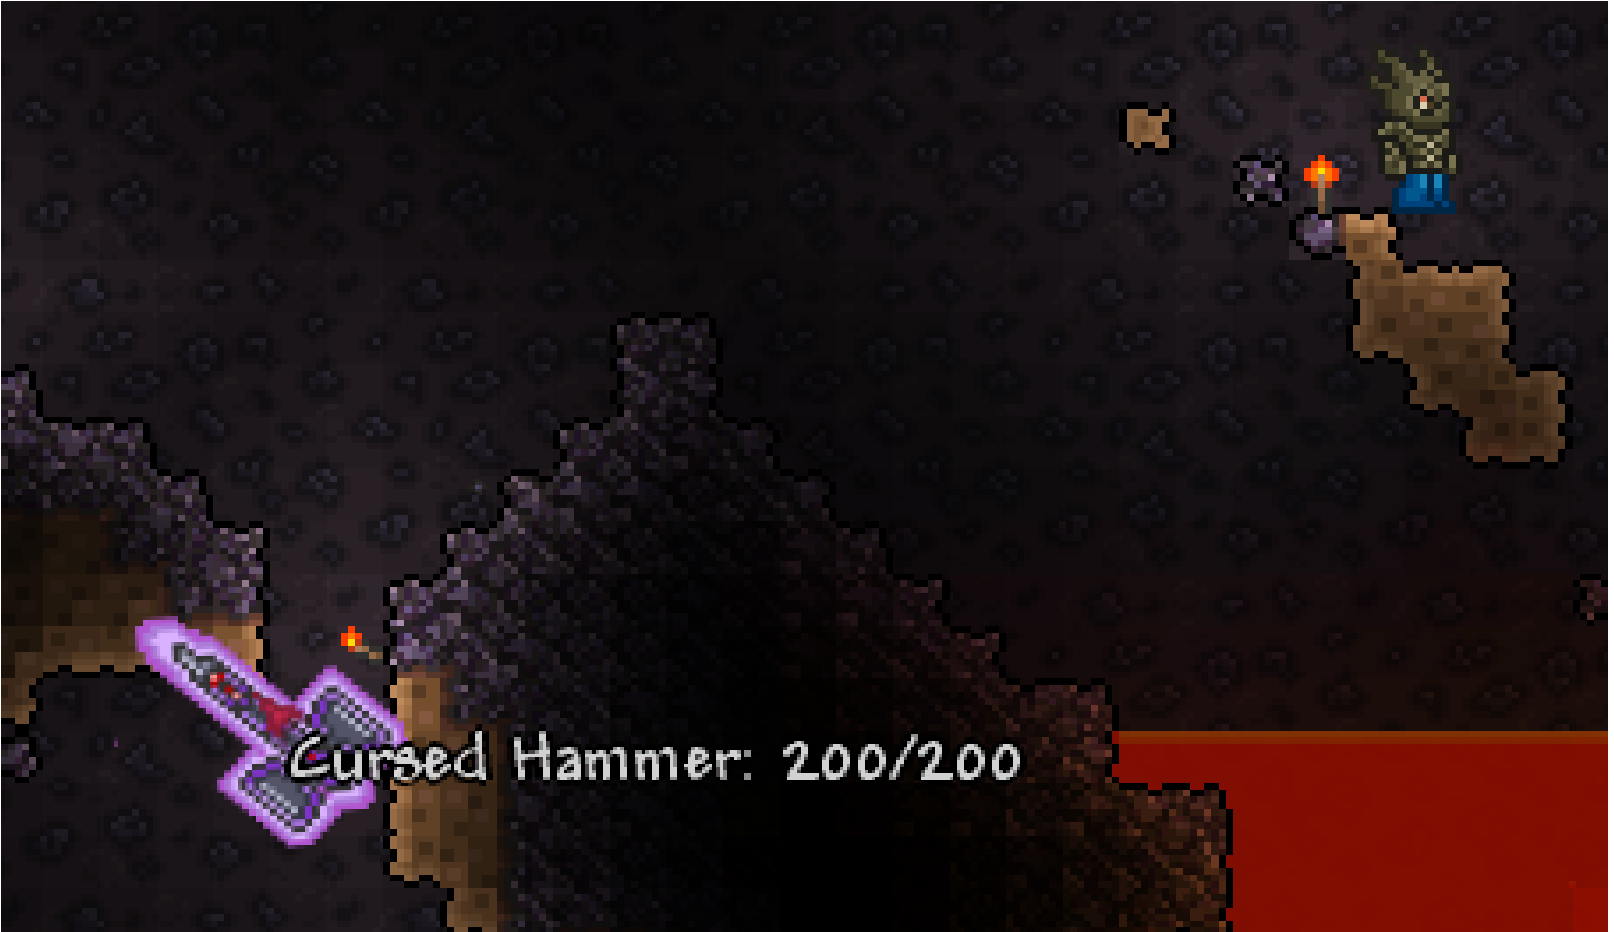 Archivo:Cursed Hammer.png